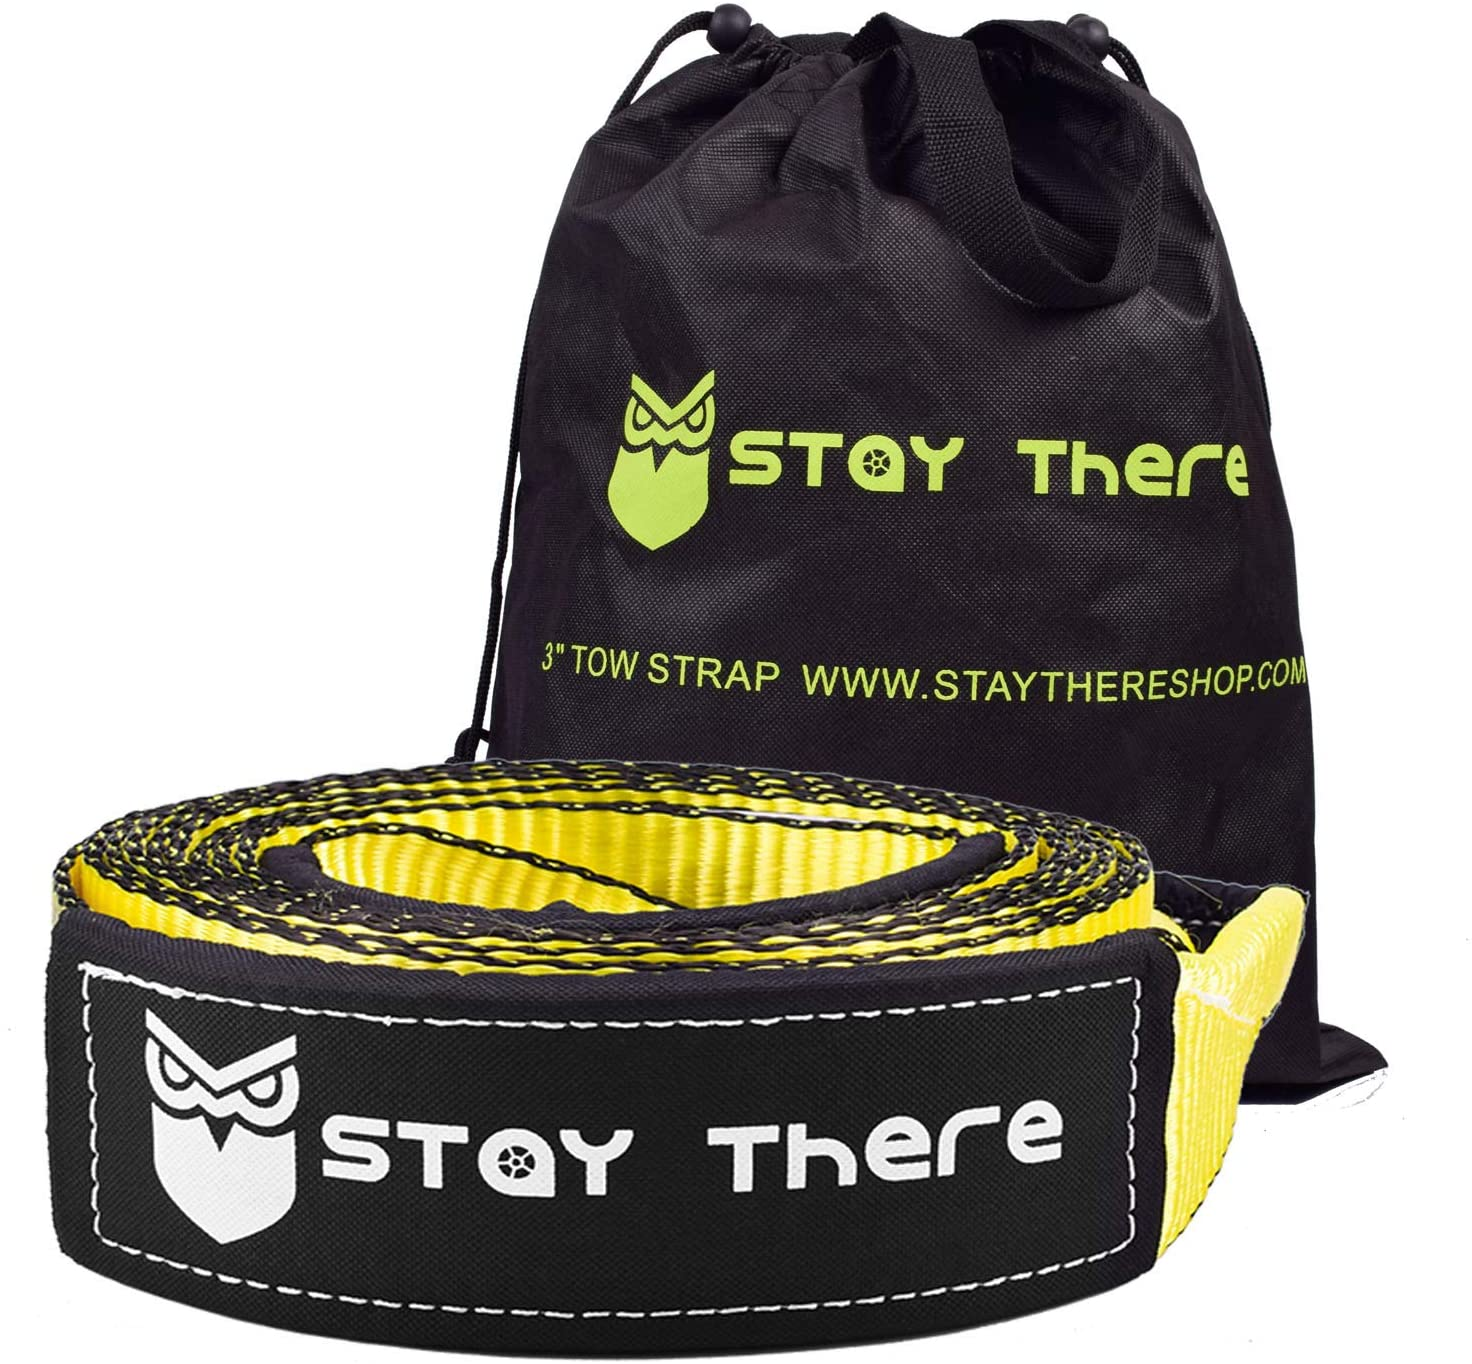 Stay There tow strap kit